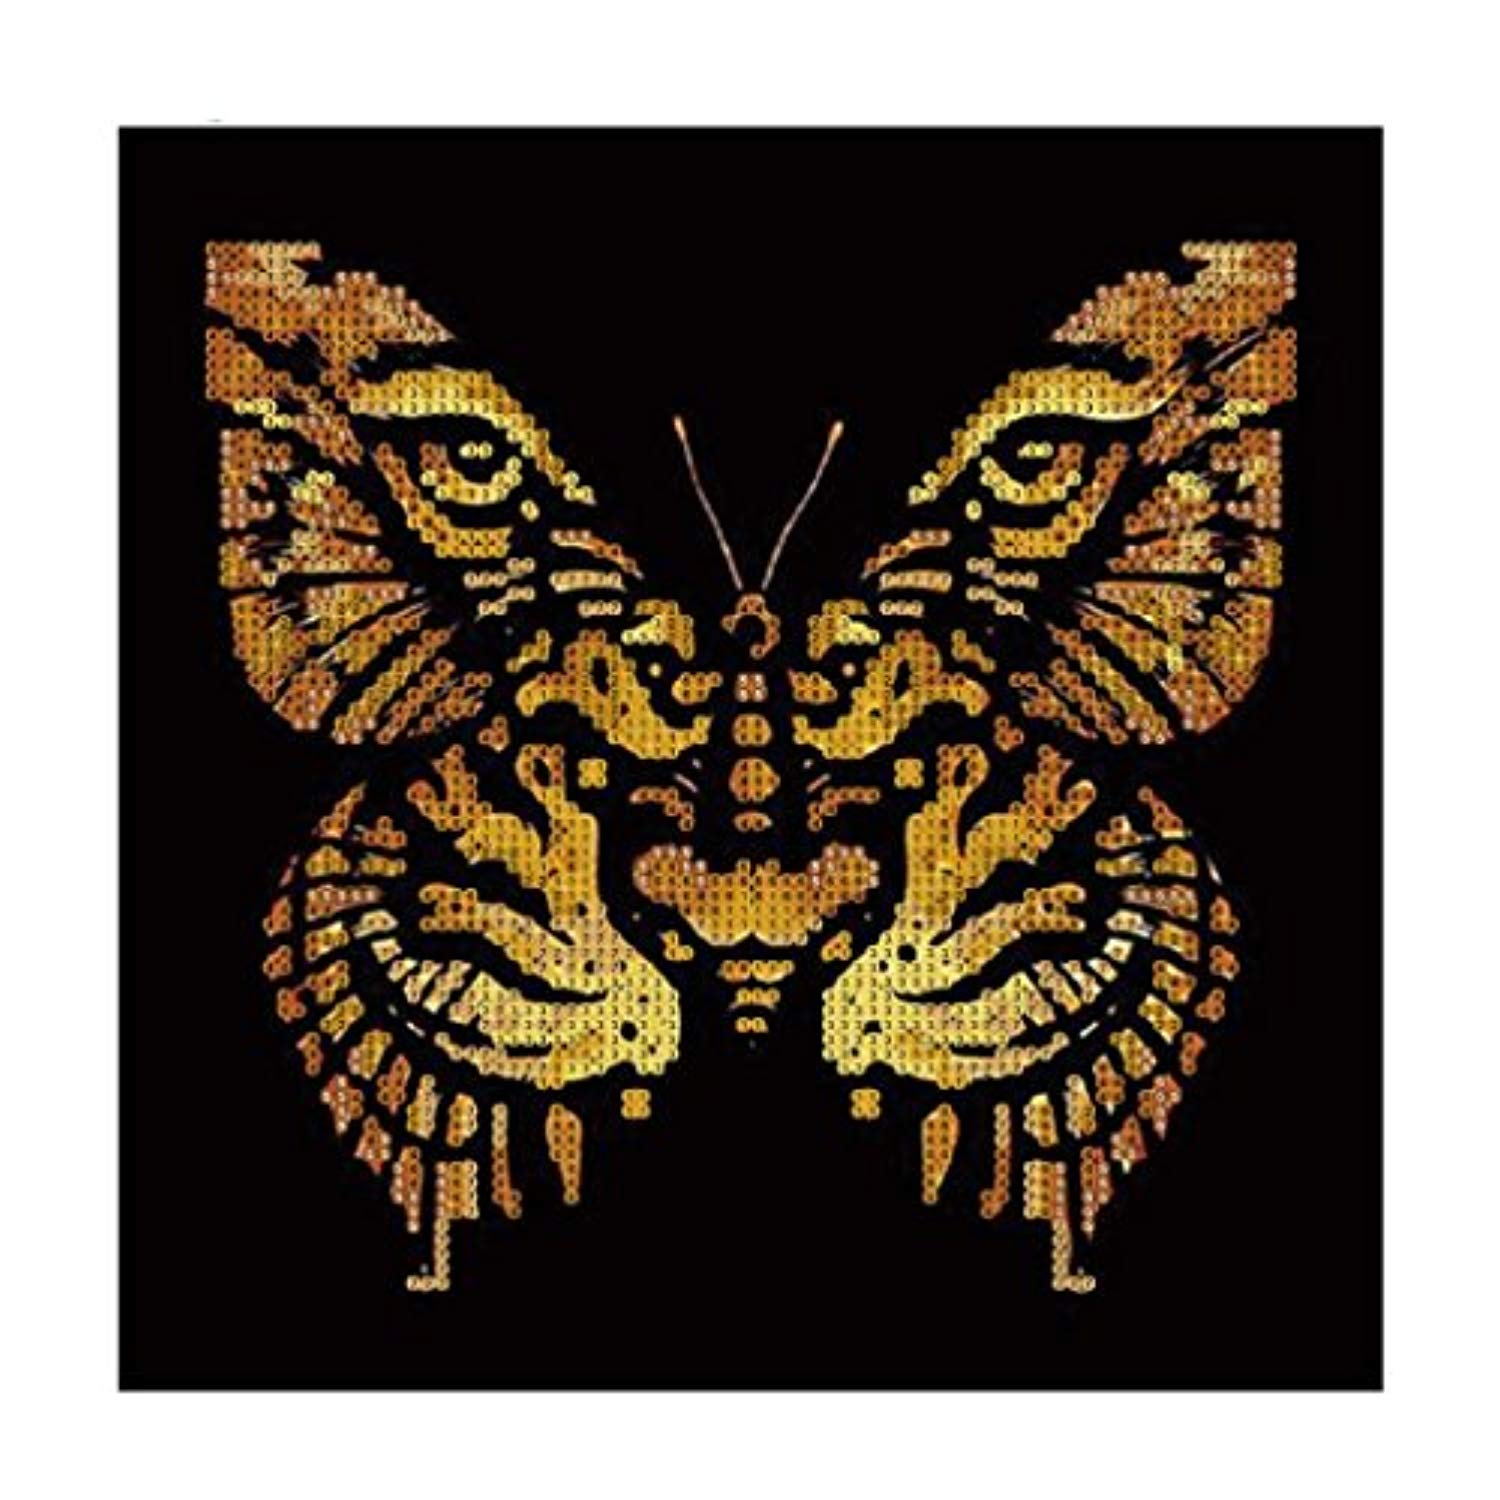 5D Diamond Painting by Number Kit,YOYORI Tiger and Butterfly Pattern Animals Rhinestone Embroidery Pasted Diy Painting Cross Stitch Kit Drill Arts Craft Wall Sticker (Butterfly Girl and Tiger) (black)